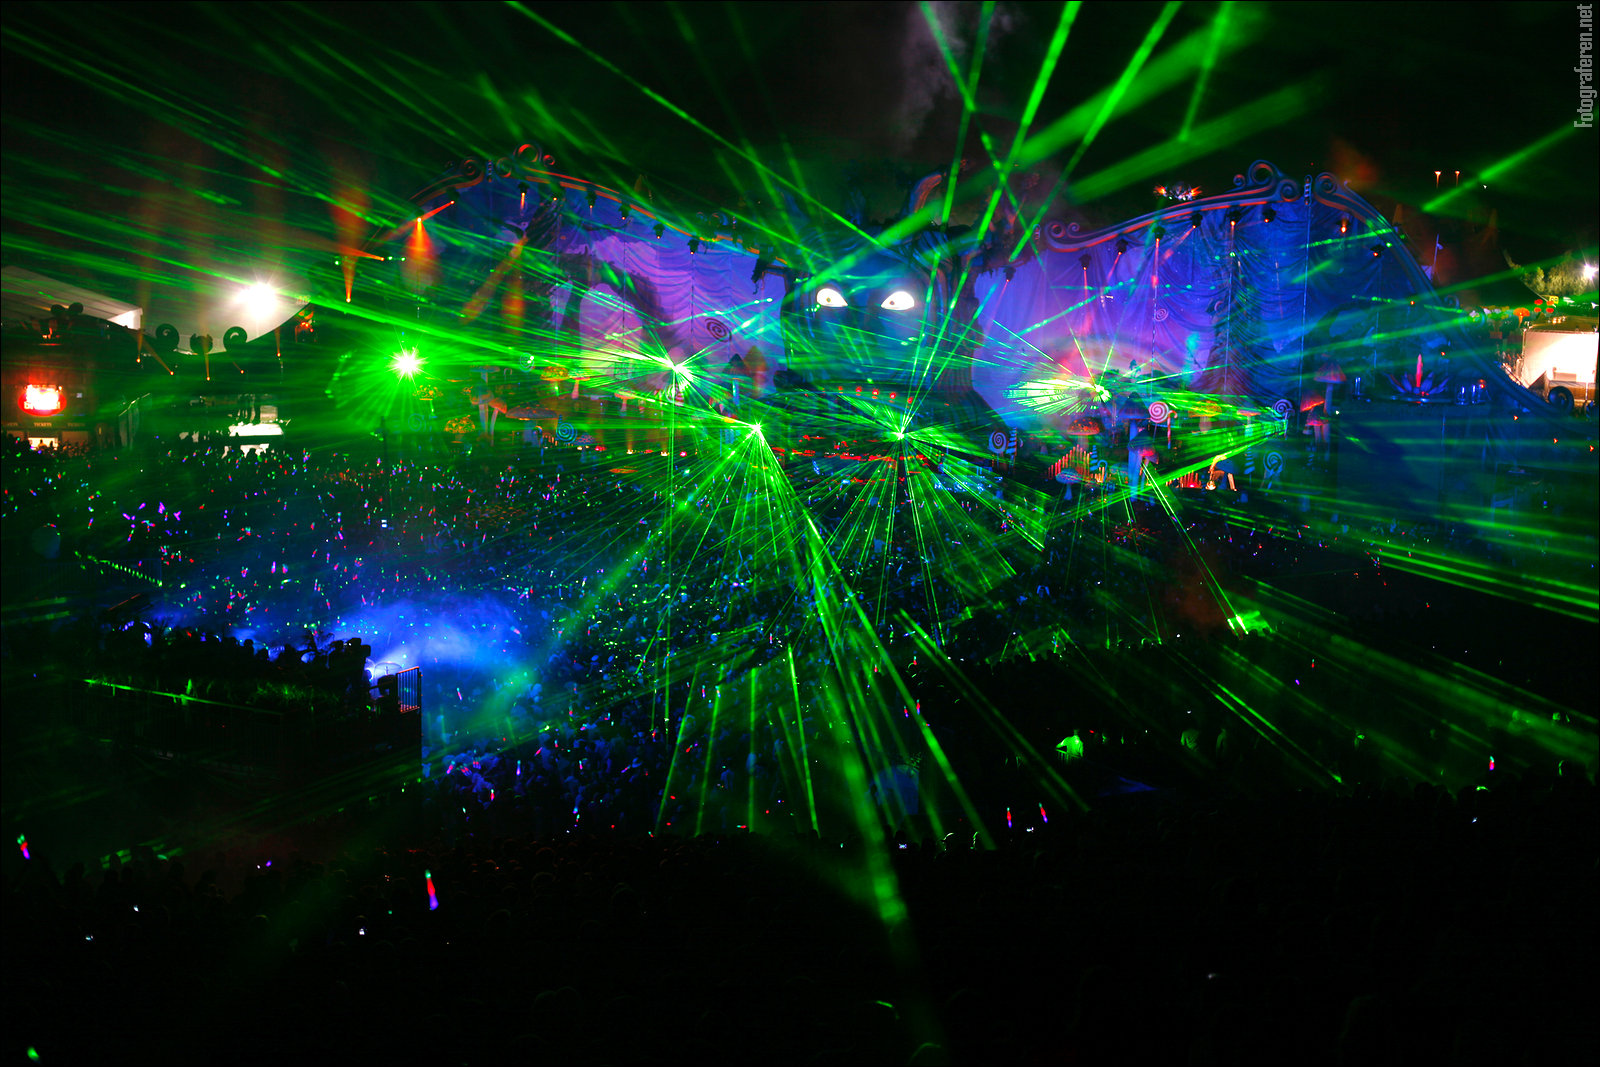 laser show party wallpaper - photo #8